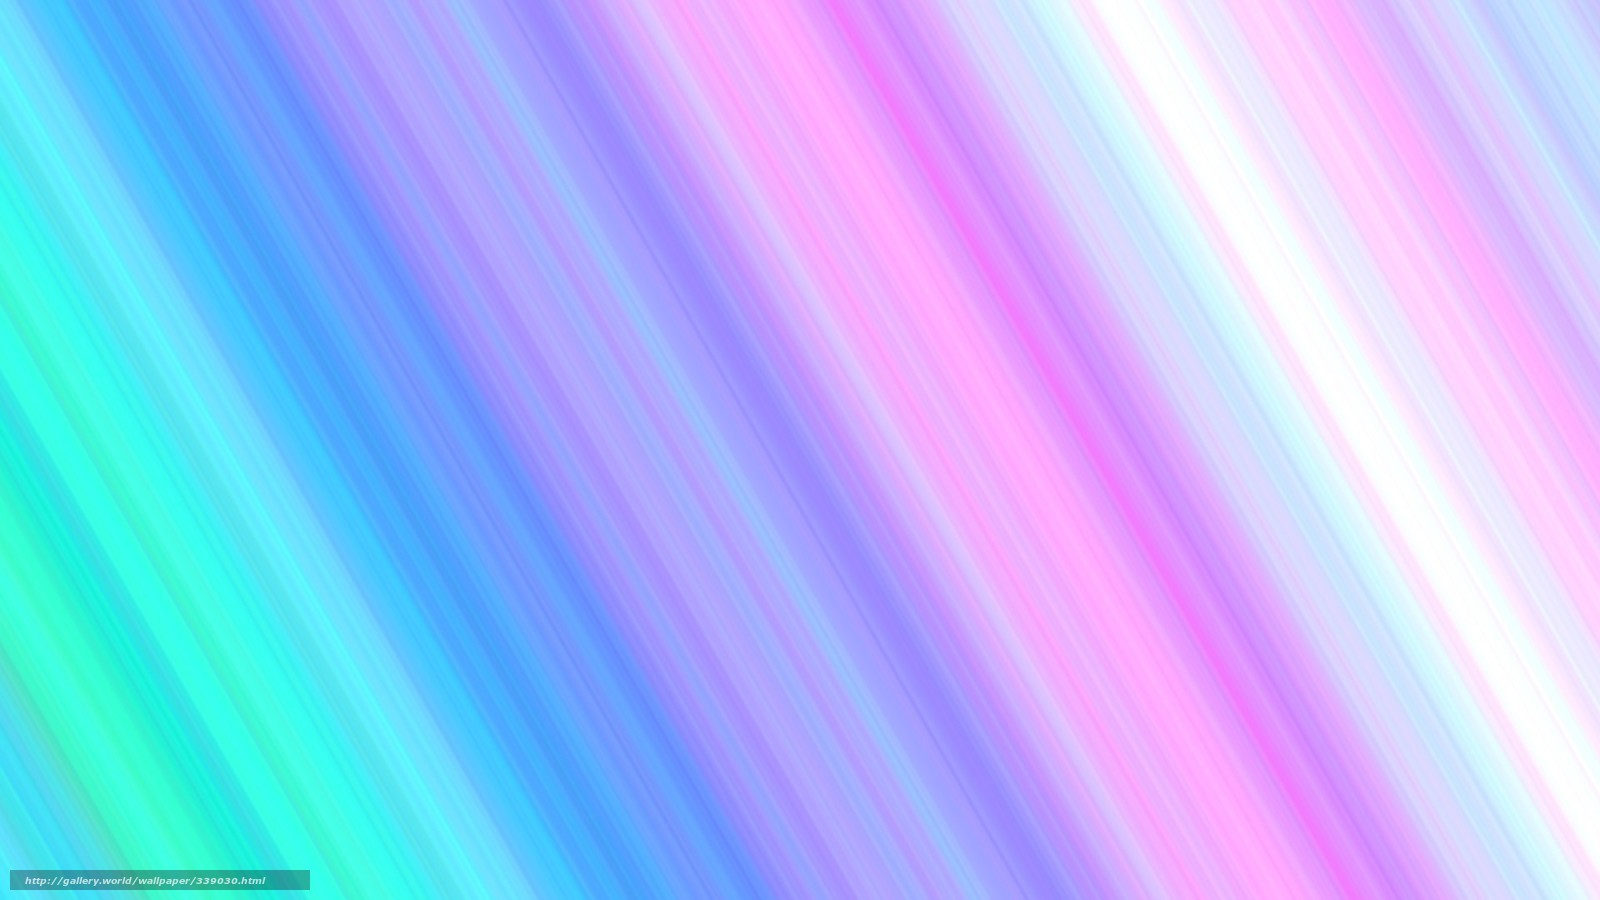 Cute Wallpaper 800 Pixels Wide And 200 Pixels Tall Download Wallpaper Abstraction Pink Purple Line Free